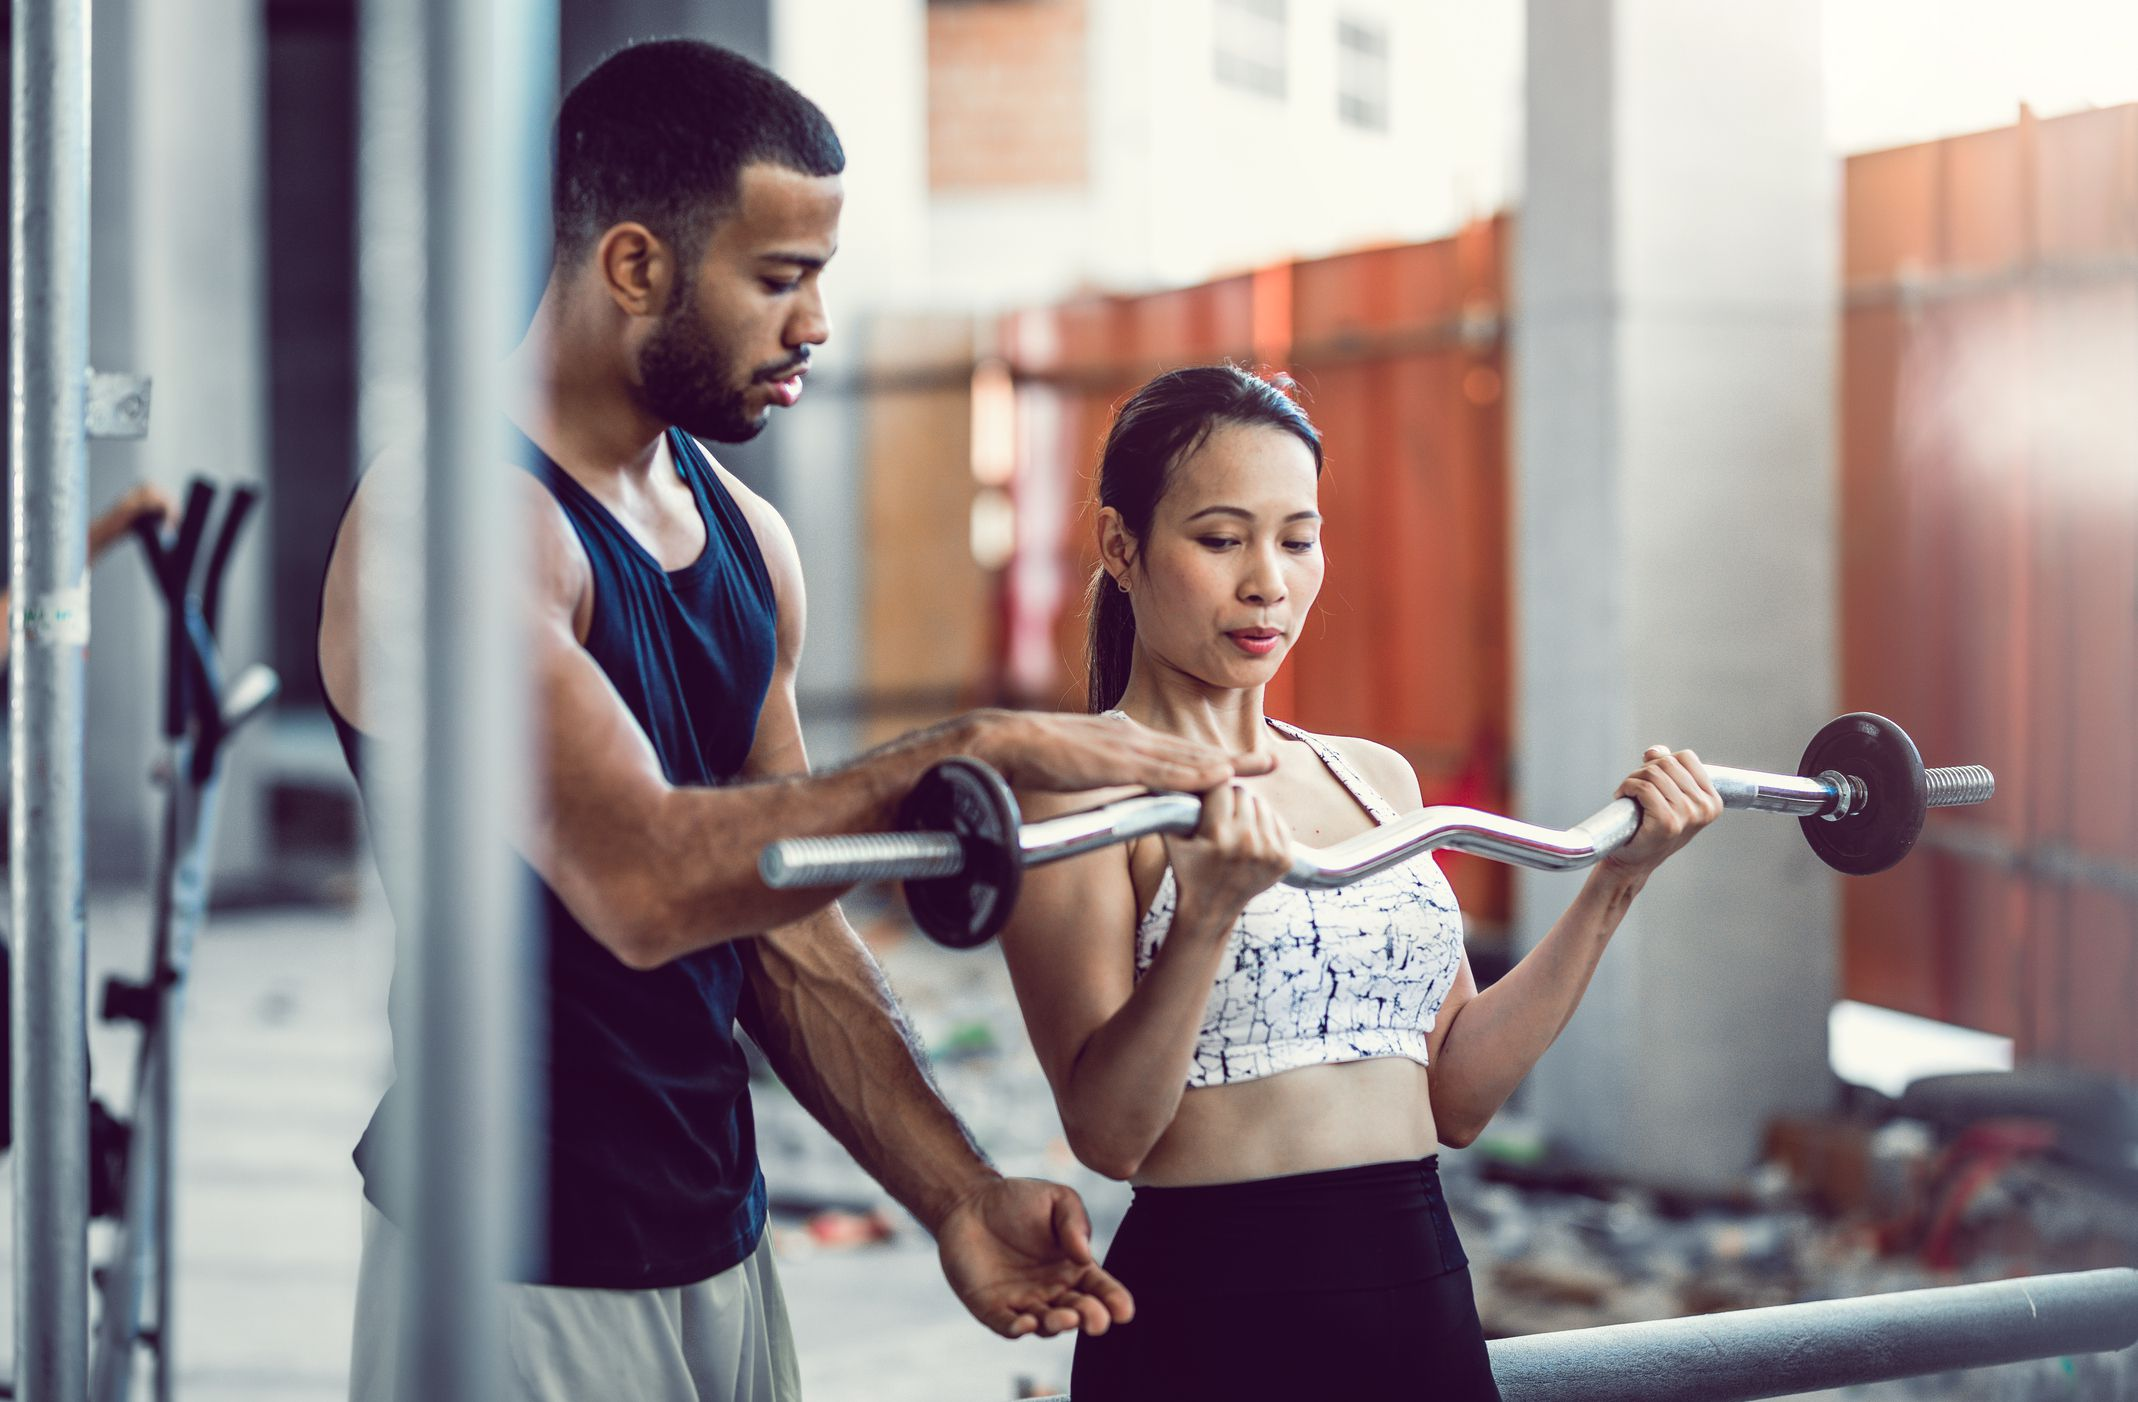 Want Fitness Advice? Check Out These Helpful Tips!